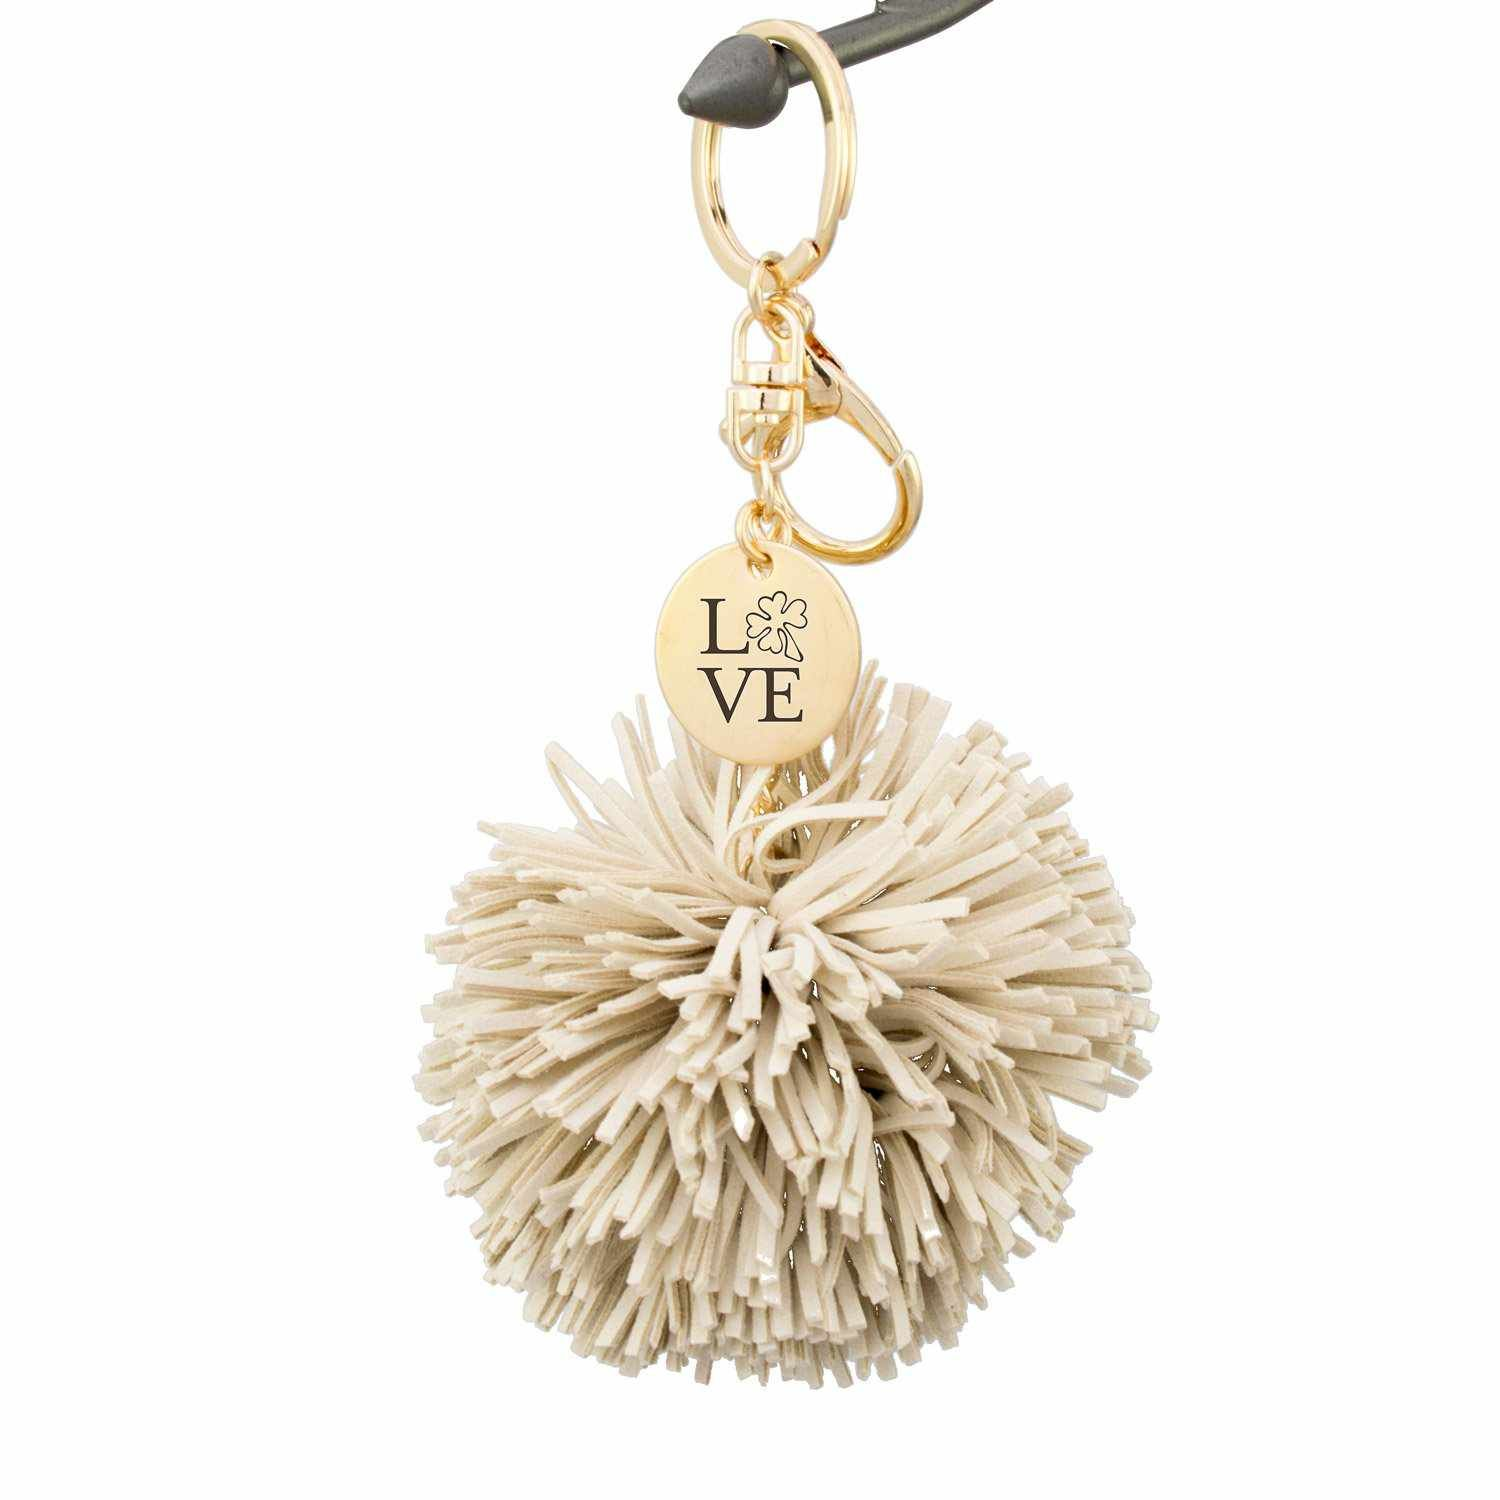 Handmade suede pom tassel keychain. This stylish keychain is made of luxe suede and comes in 5 chic colors. Clip to your tote, purse or backpack or add your keys for a keychain that's super easy to find in your bag! Features a charm with LOVE laser-engraved. Great gift for a sister, friend, or even for yourself! Each piece is handmade and unique! Makes a great gift for Easter, Christmas, Valentine's Day, birthday, etc.PRODUCT FEATURES Keychain length: 5 inches 1 inch round antiqued brass disc 1